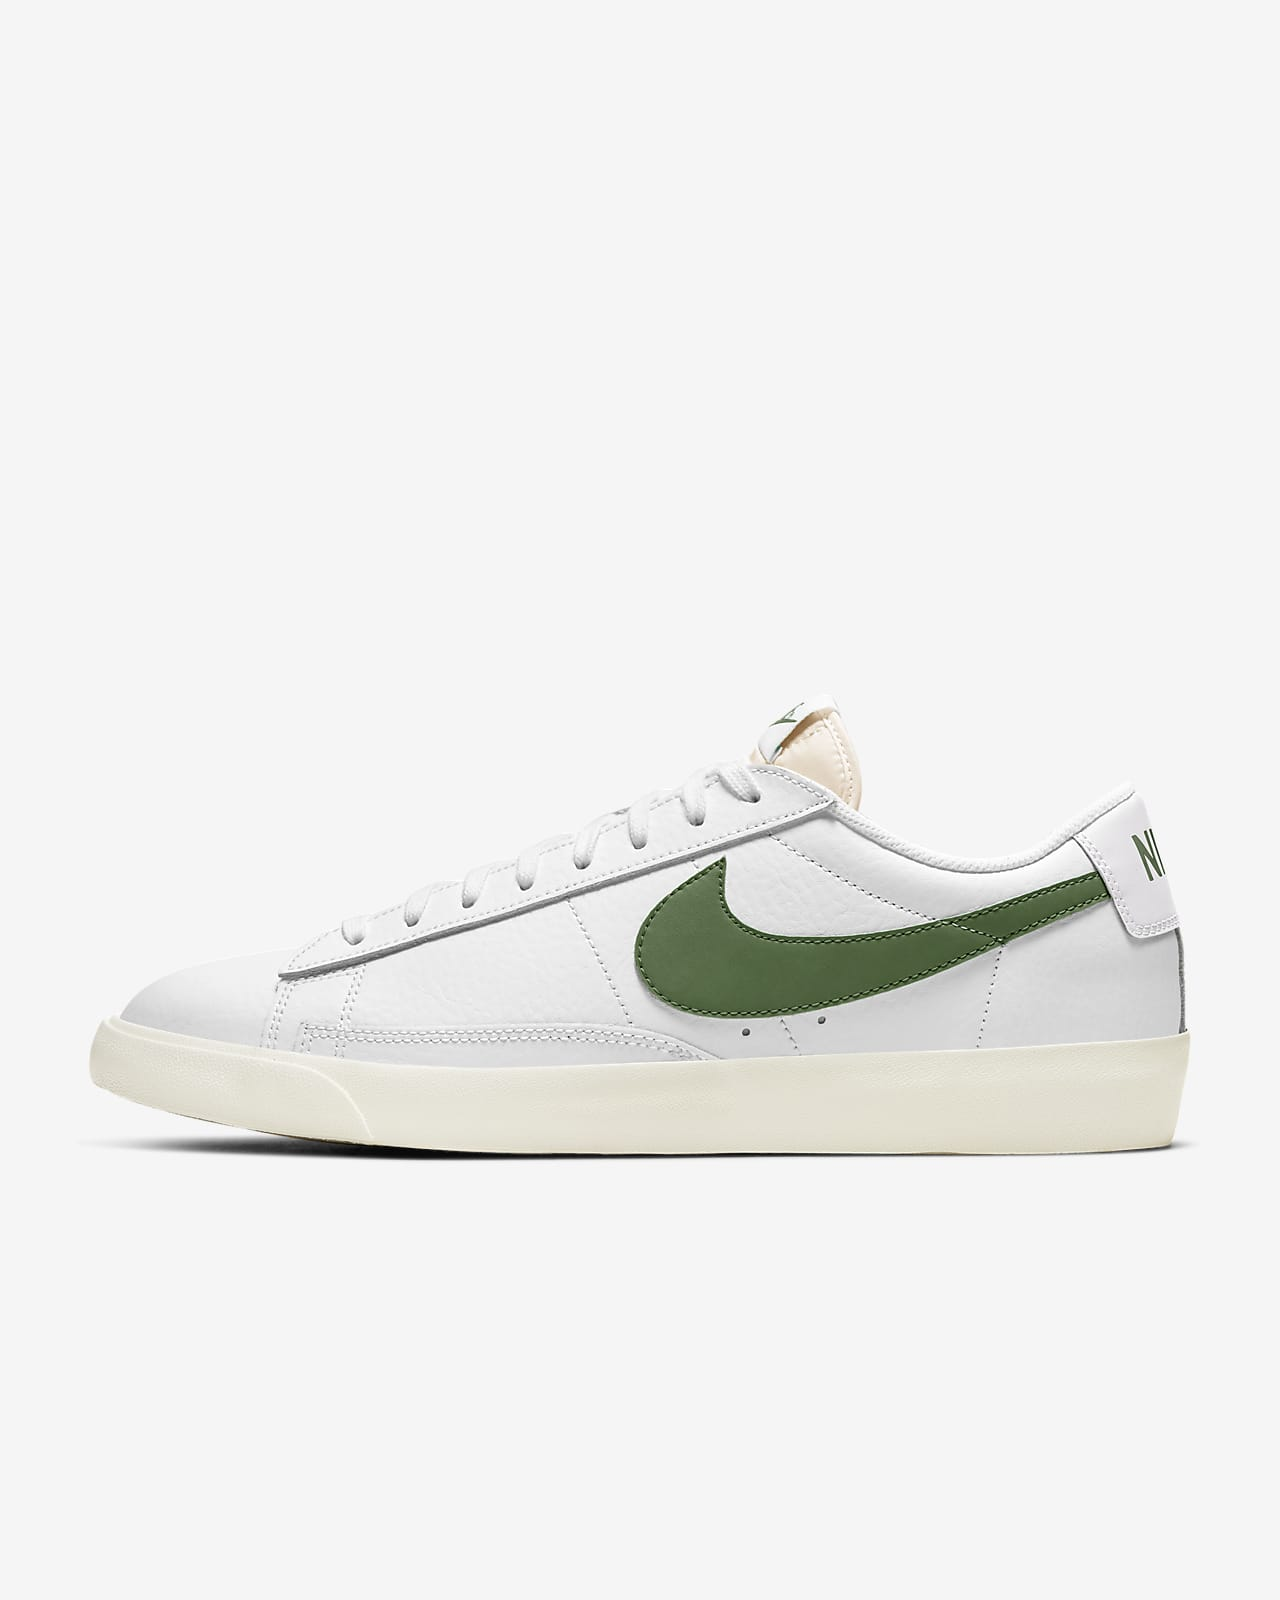 Nike Blazer Low Leather Men's Shoe